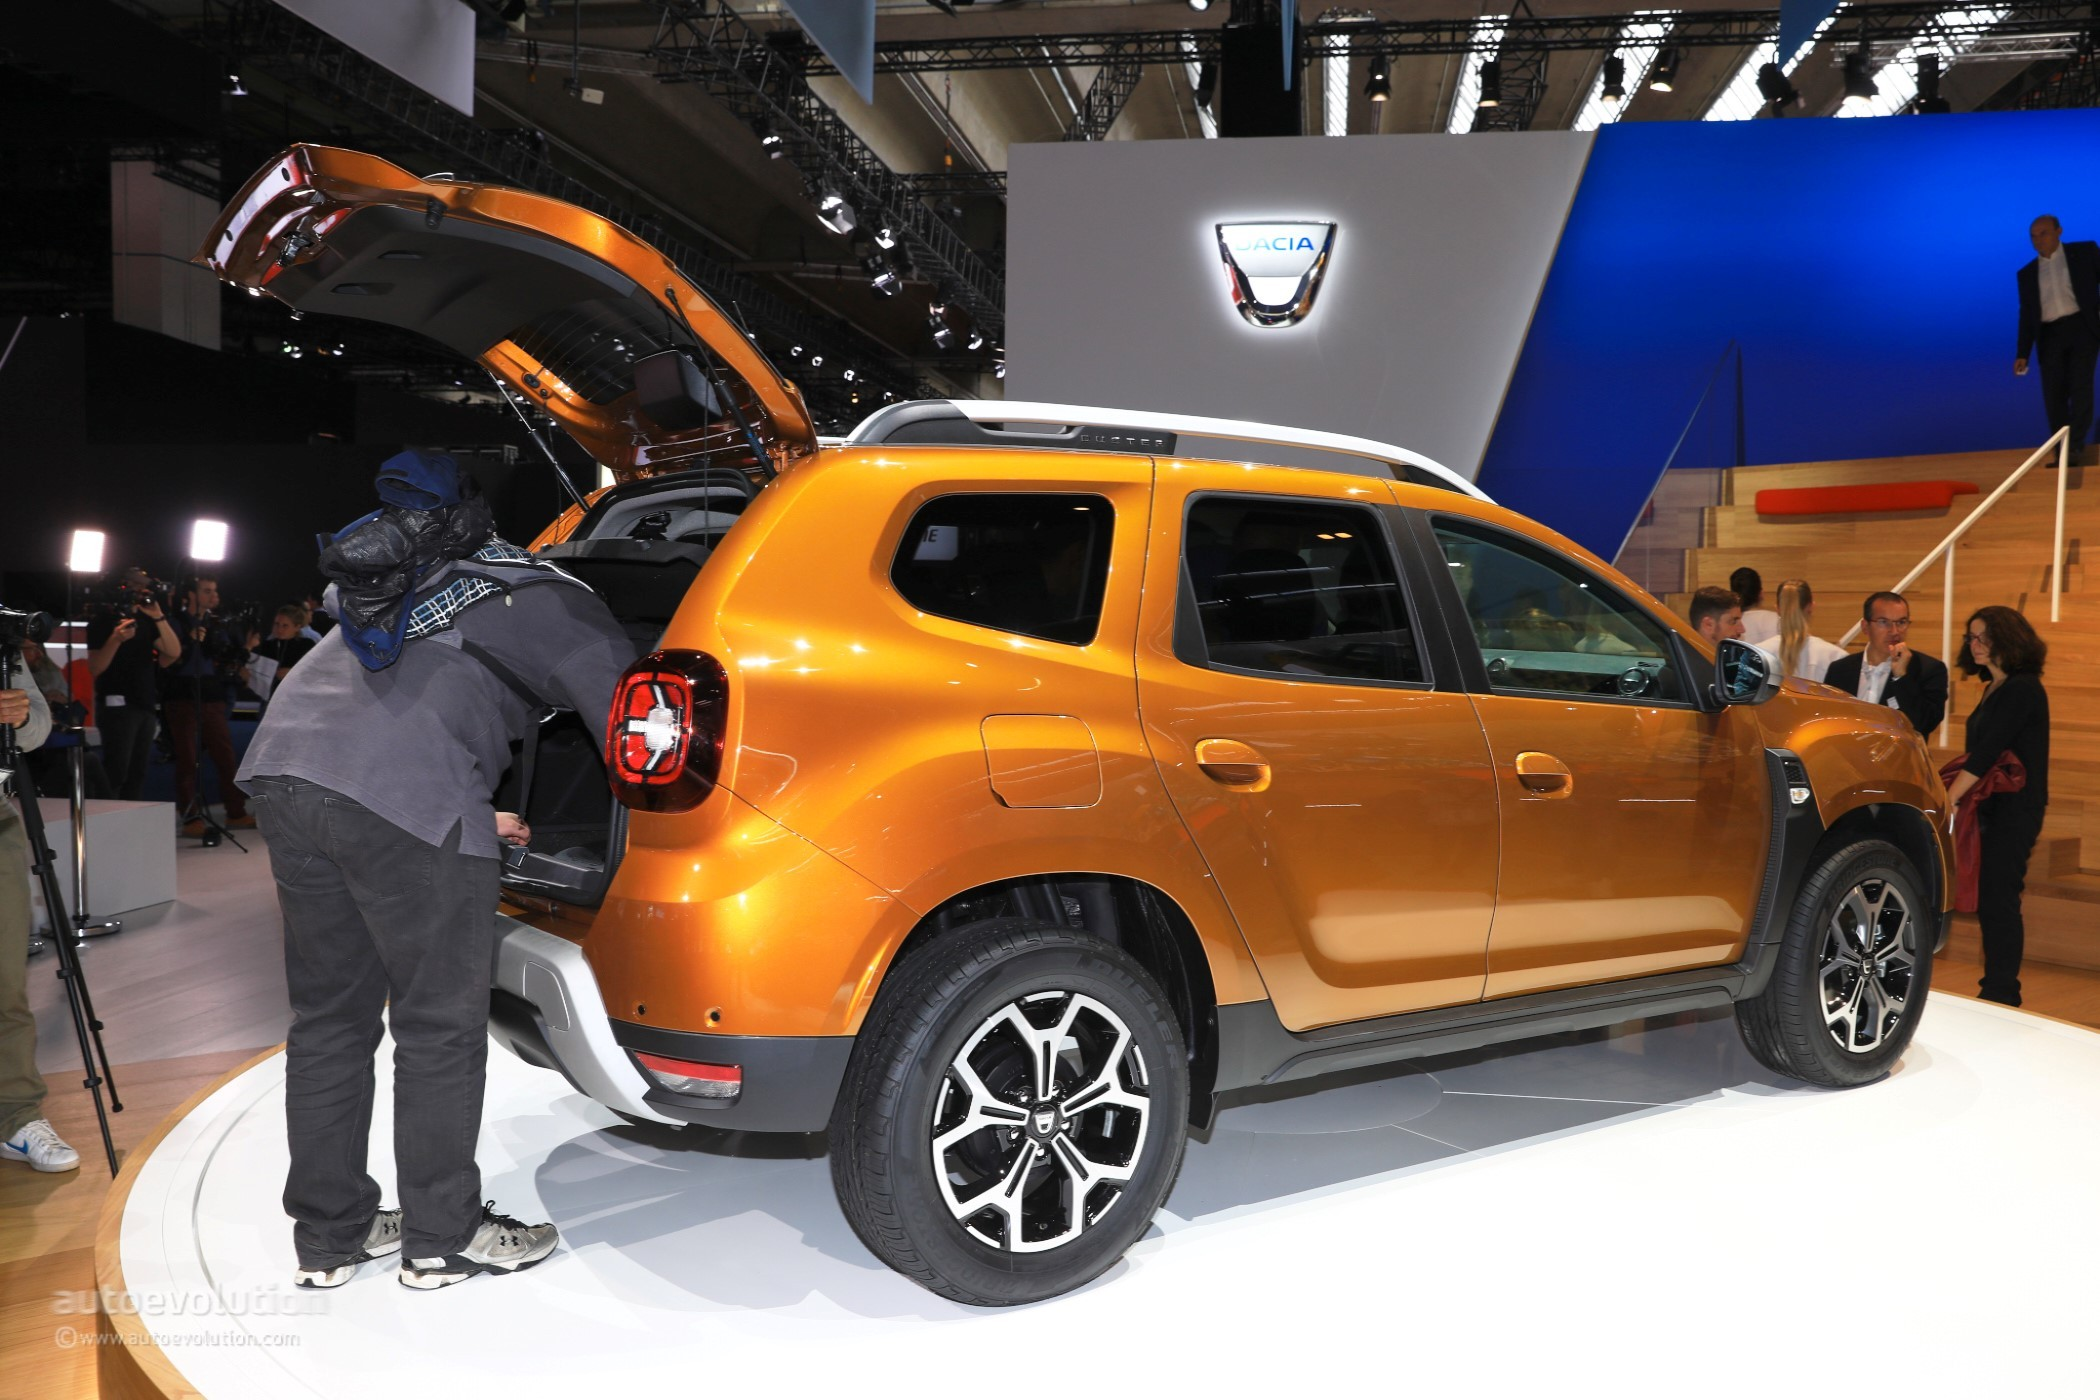 dacia uk announces new duster pricing still the cheapest suv on sale autoevolution. Black Bedroom Furniture Sets. Home Design Ideas